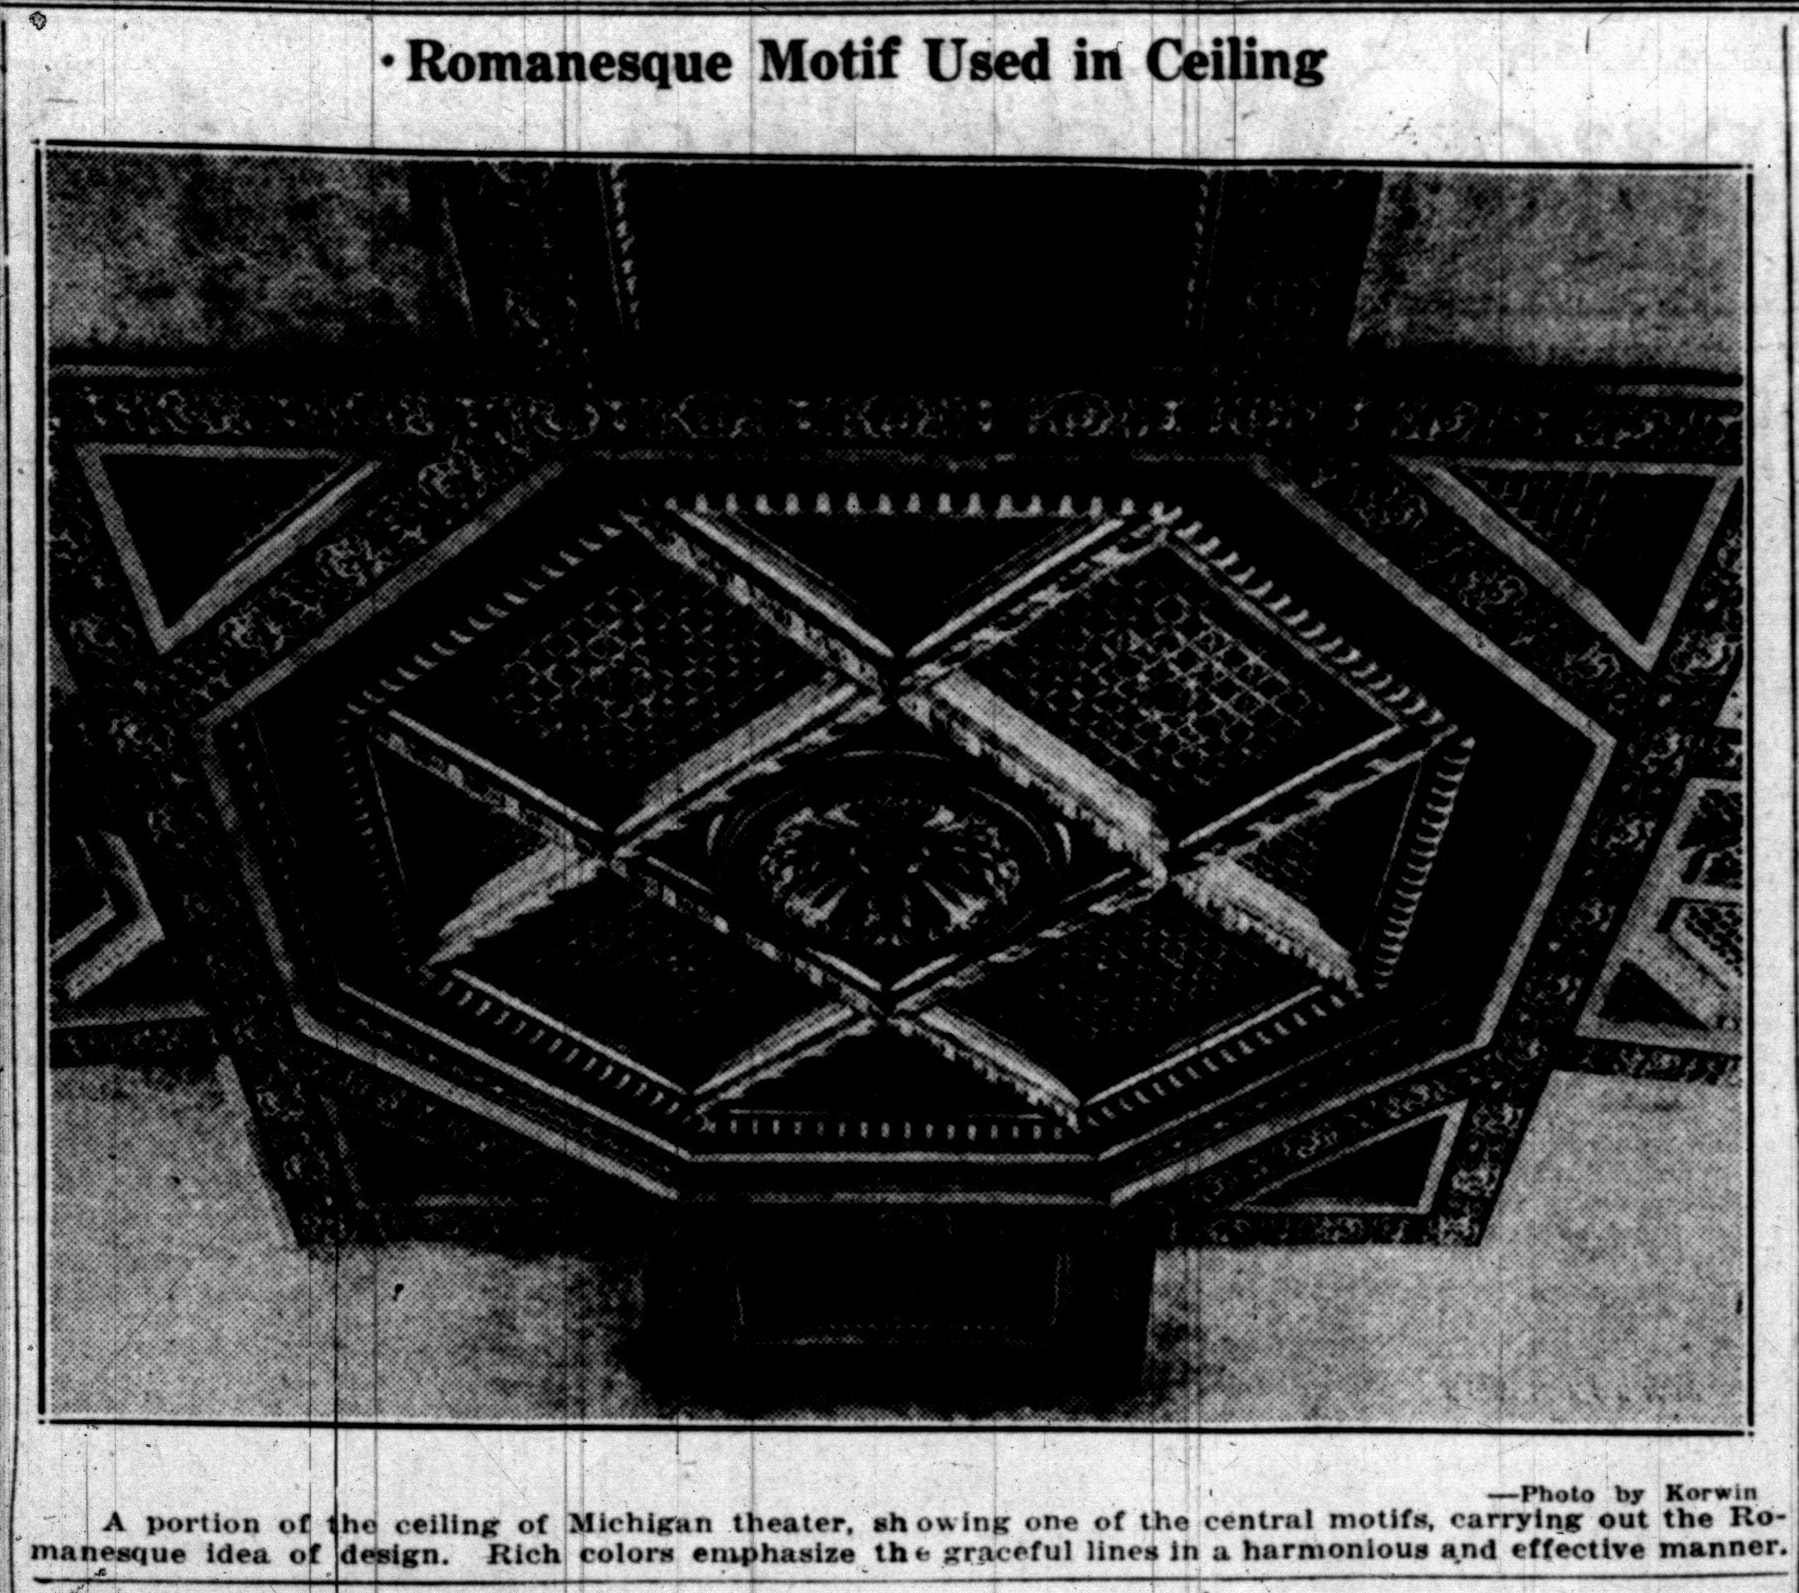 Romanesque Motif Used In Ceiling image